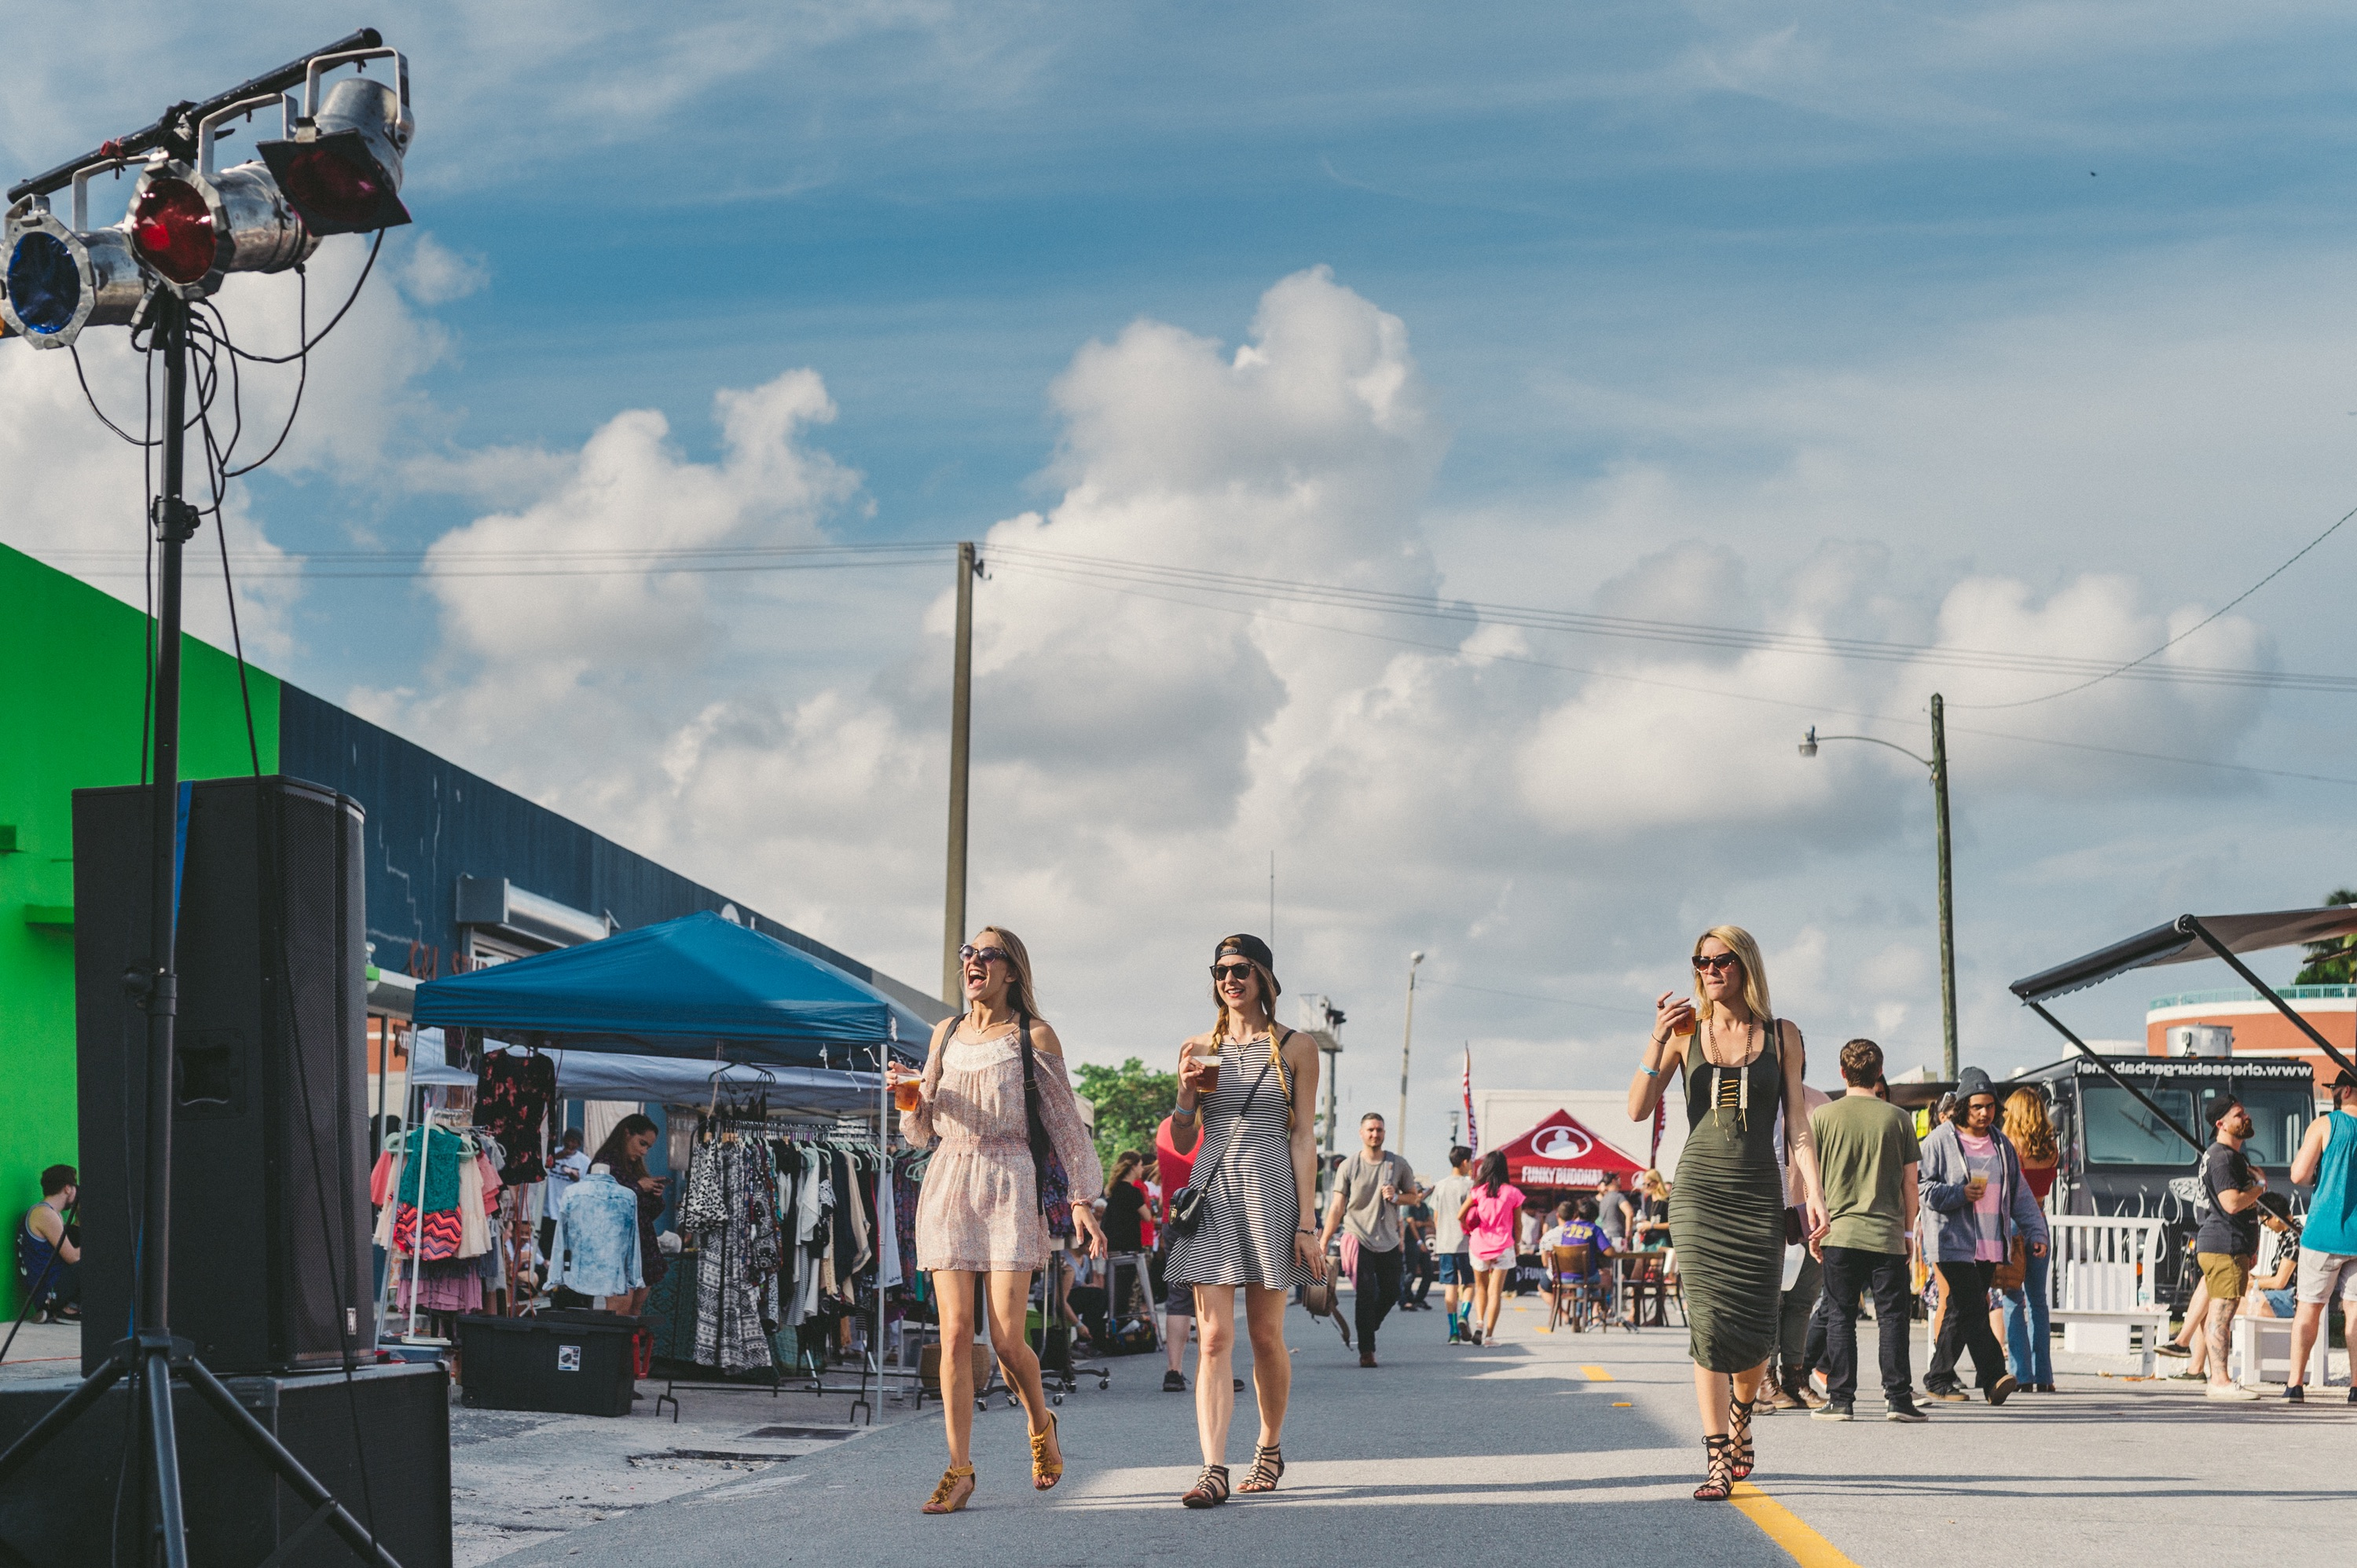 For-the-love-venice-magazine-fort-lauderdale-crowd